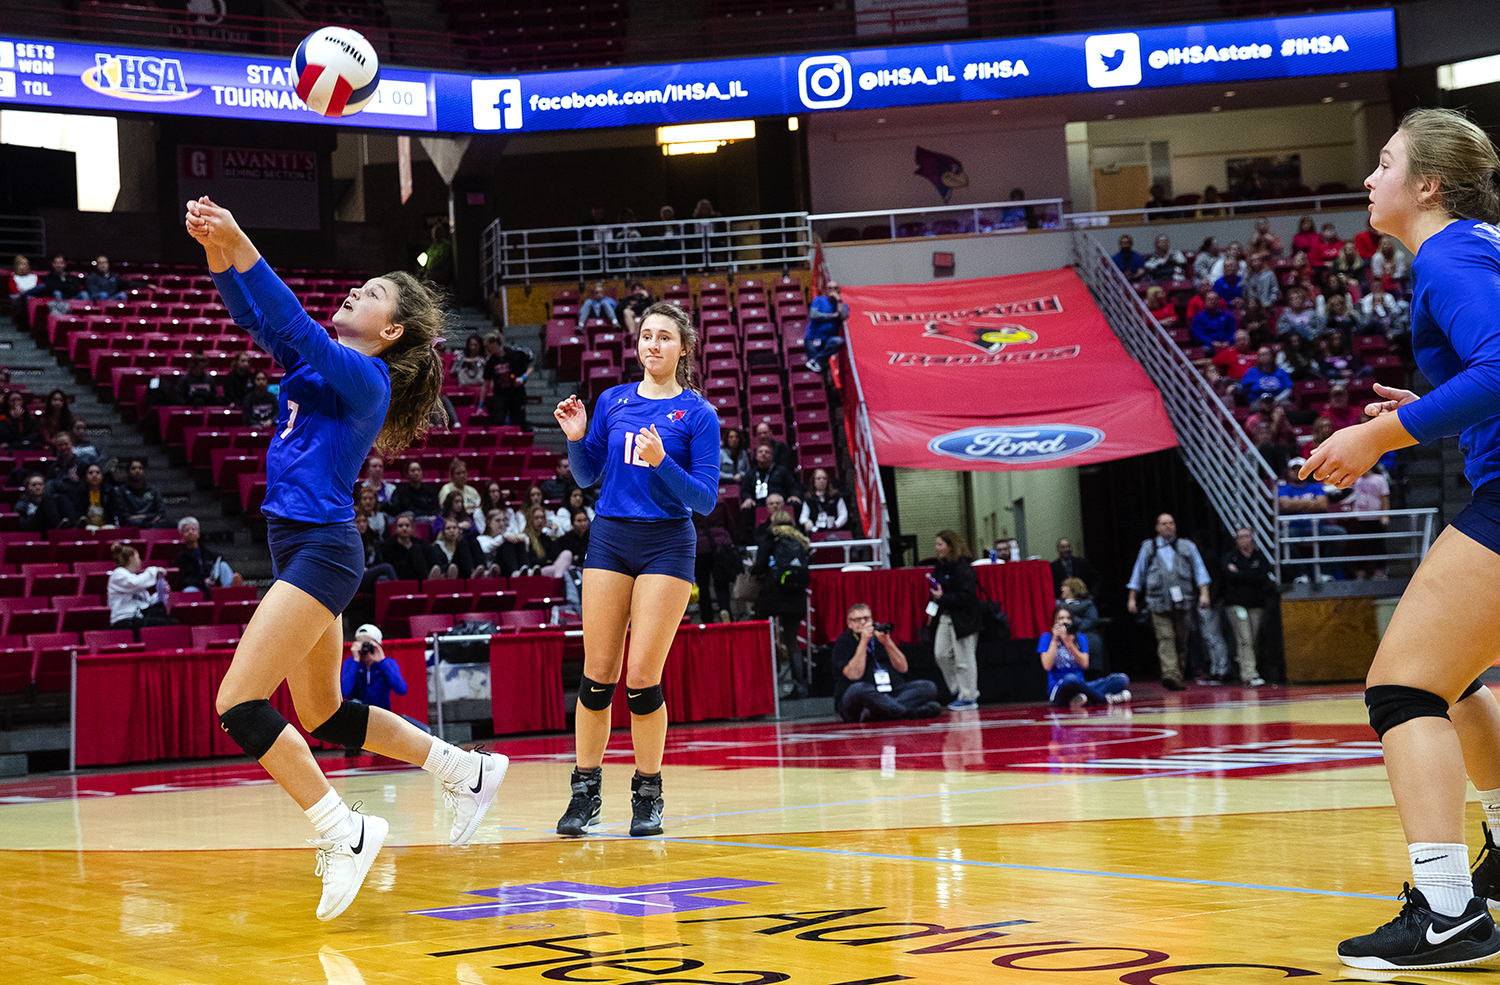 Pleasant Plains' Ali Fraase passes the ball against Galena during the IHSA Class 2A Volleyball championship at Redbird Arena in Normal Saturday, Nov. 10, 2018. [Ted Schurter/The State Journal-Register]